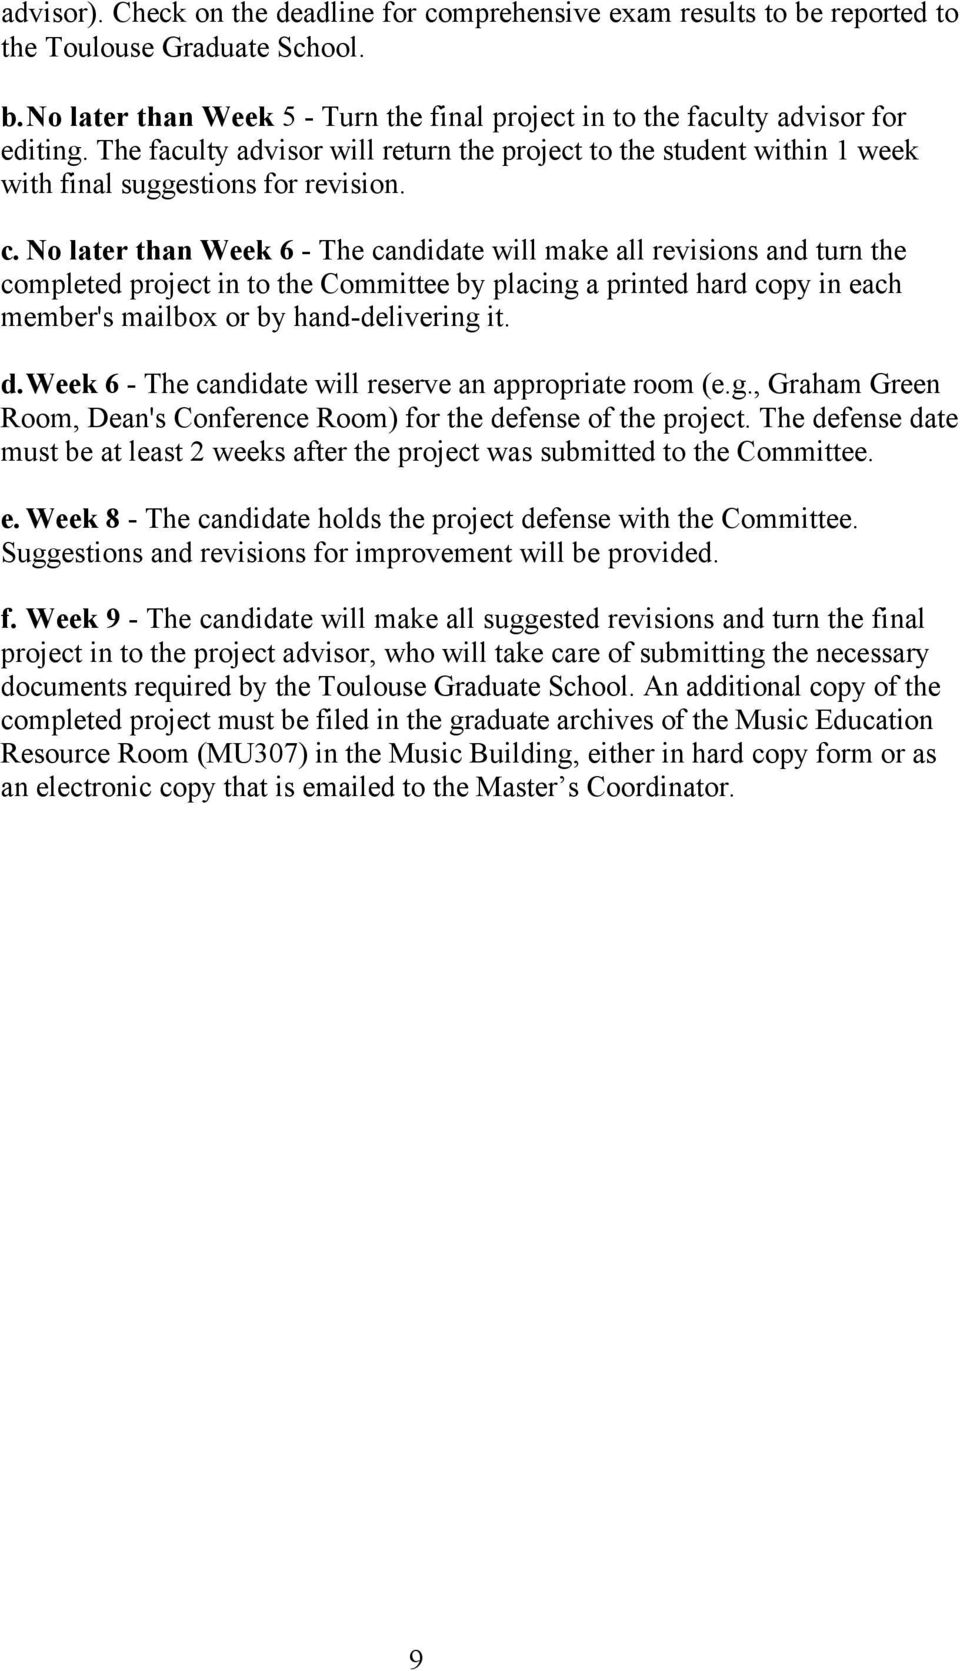 No later than Week 6 - The candidate will make all revisions and turn the completed project in to the Committee by placing a printed hard copy in each member's mailbox or by hand-delivering it. d.